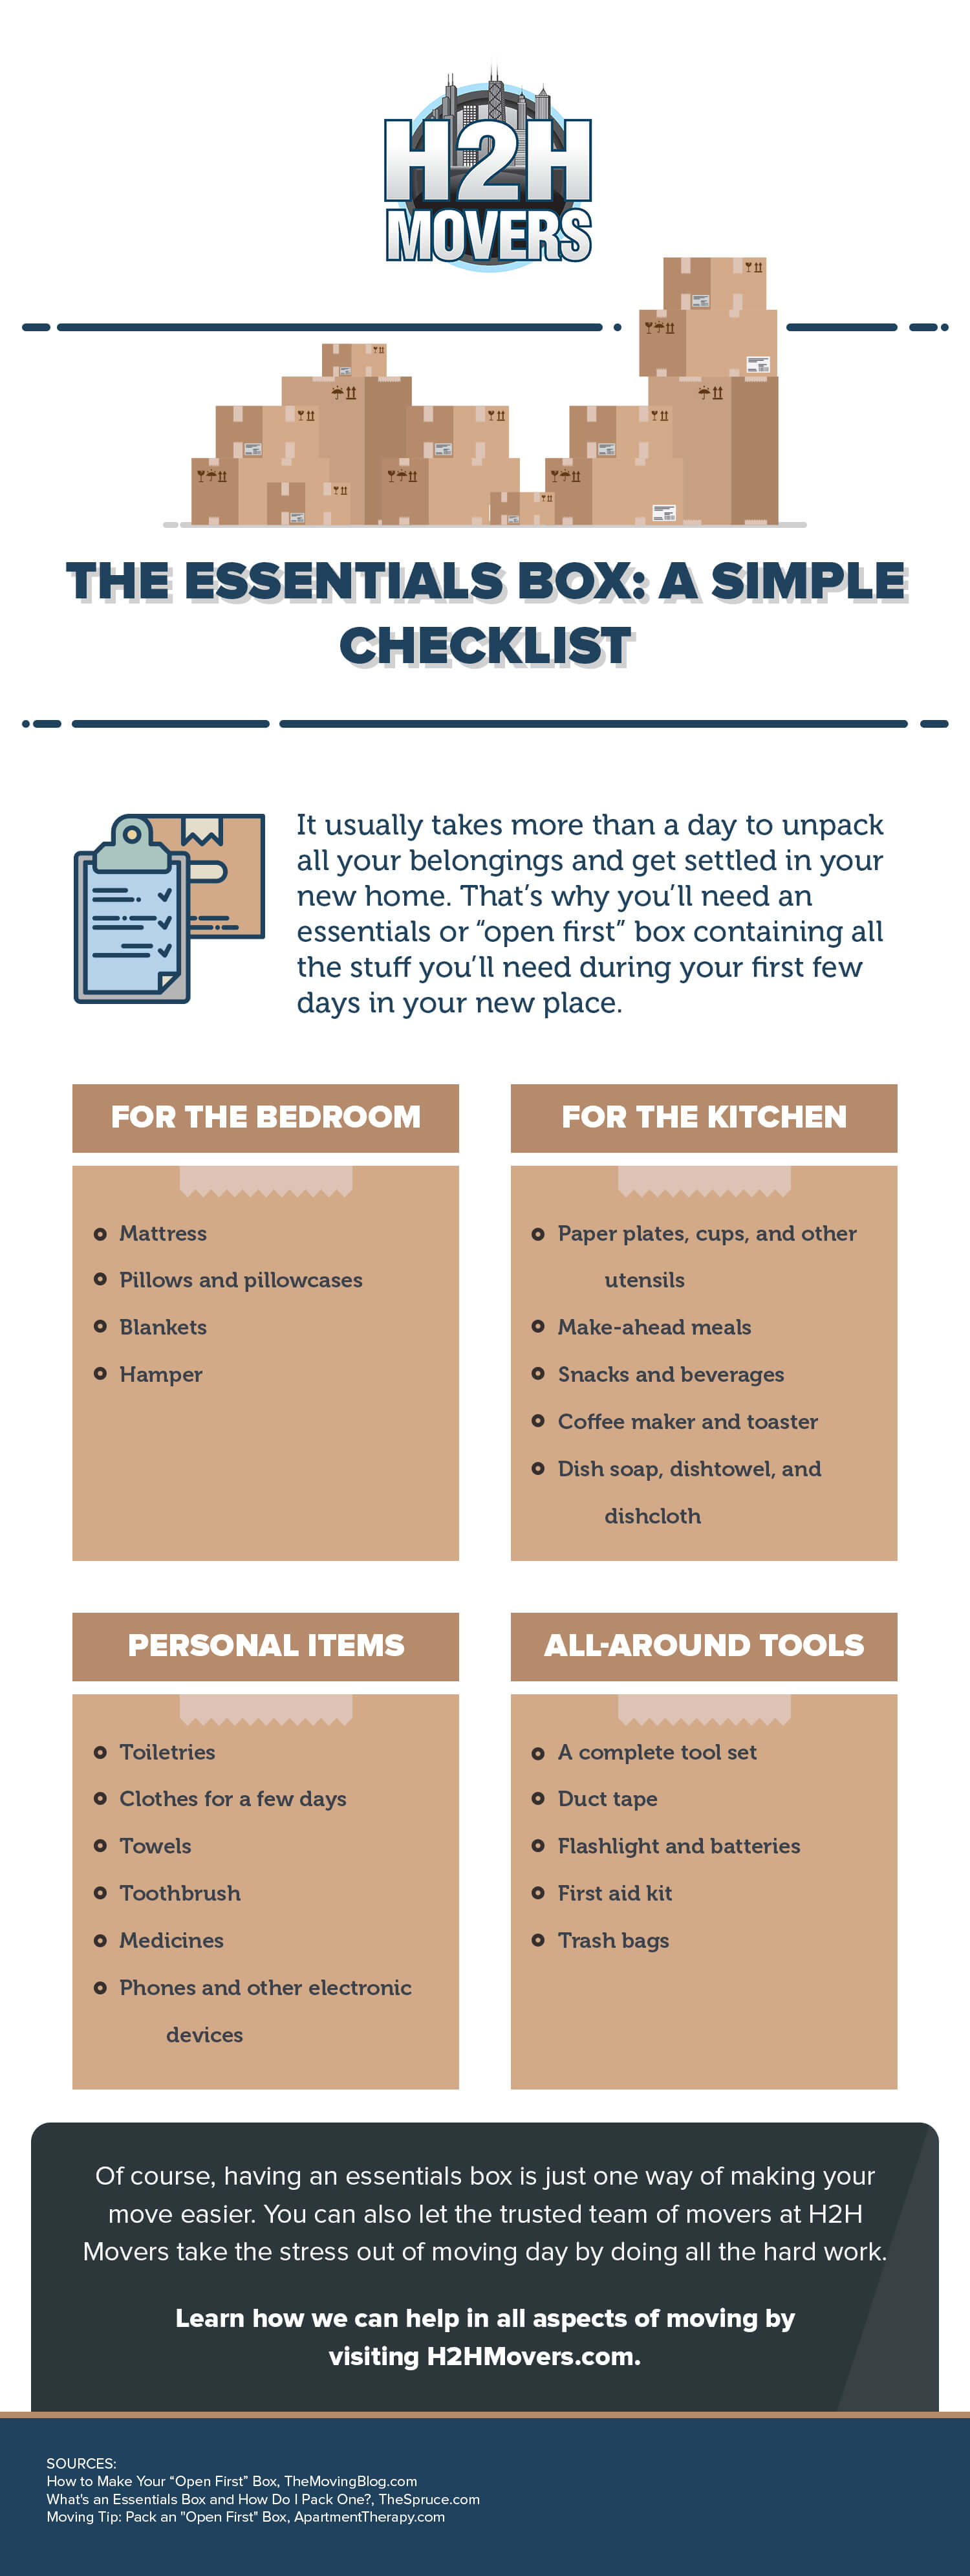 Professional Movers Share the Must-Haves of an Essentials Box